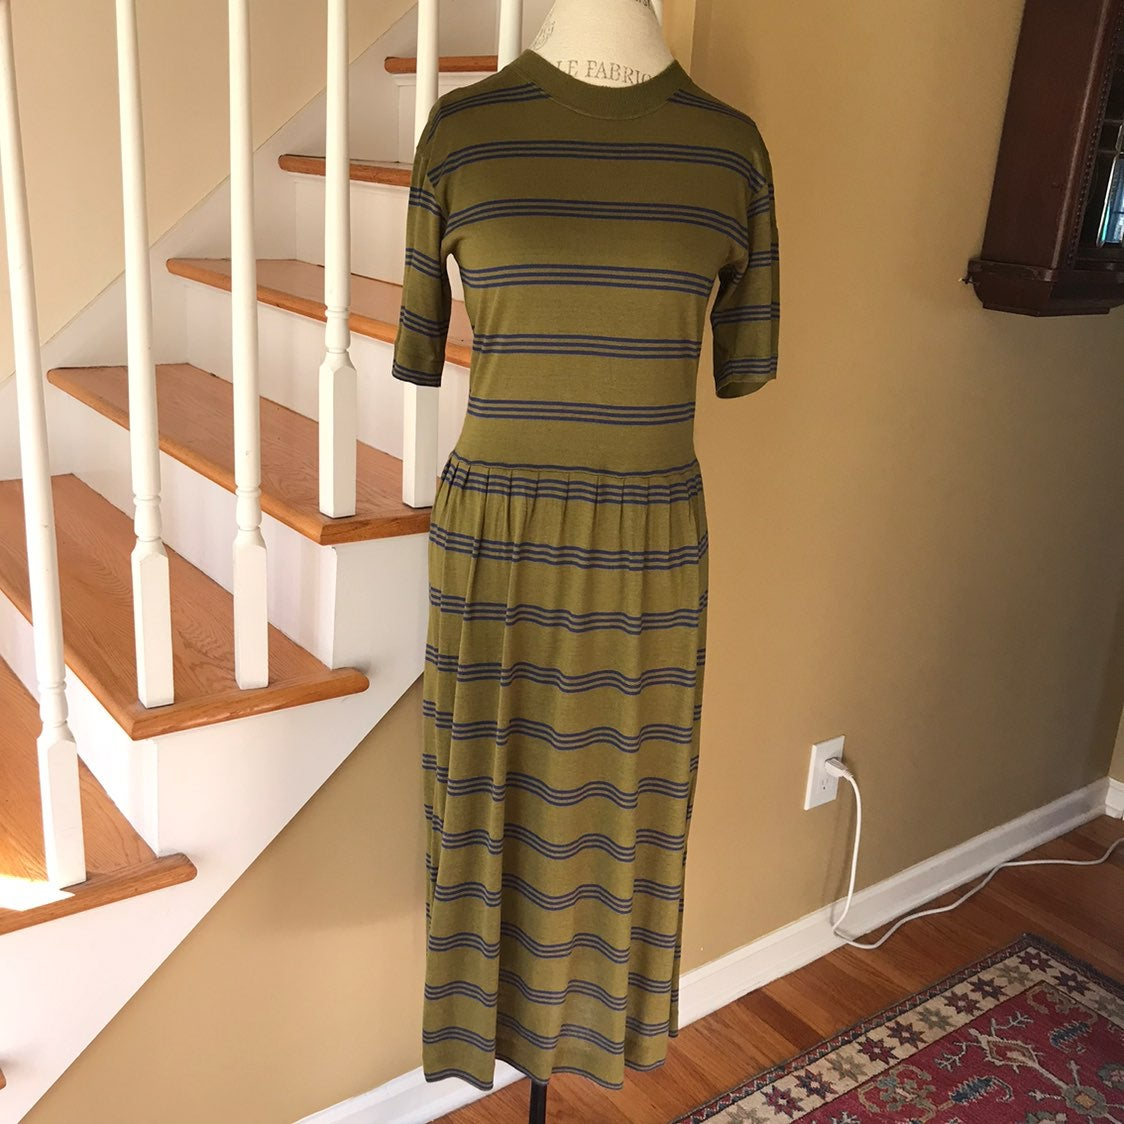 VTG Benetton Green Dress Sweater Twinset